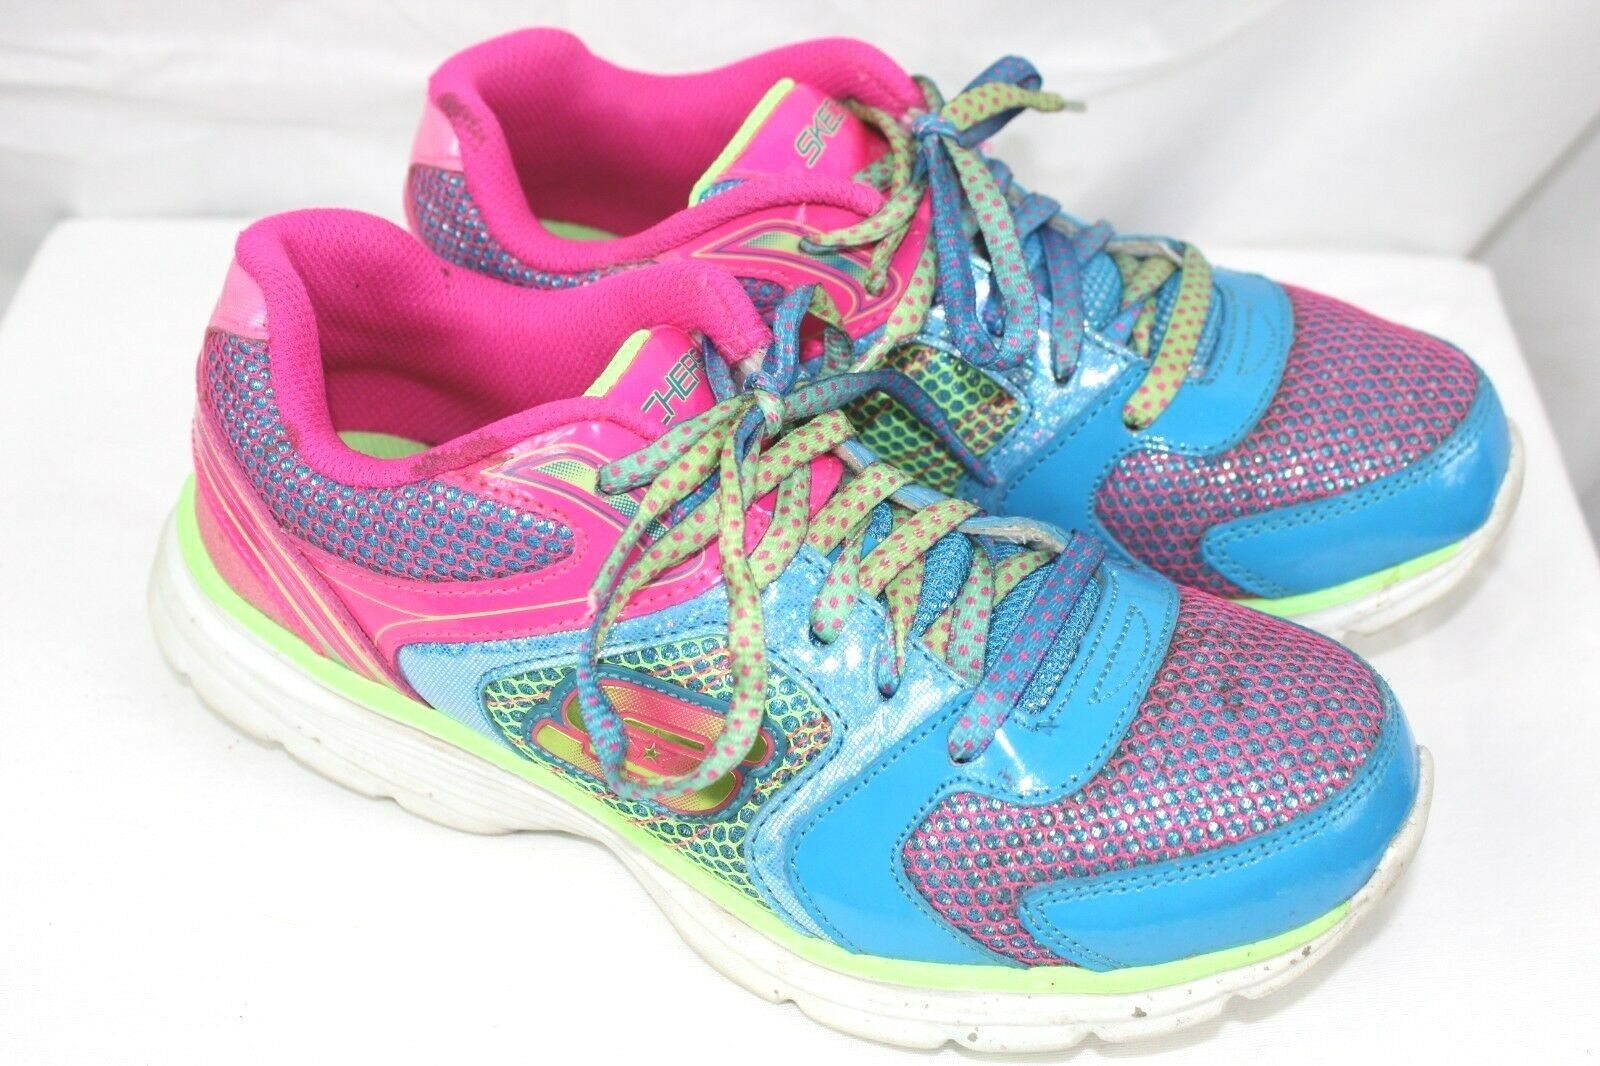 Sketchers brand girls or  womens athletic sneakers size 5 leather + fabric  WH10